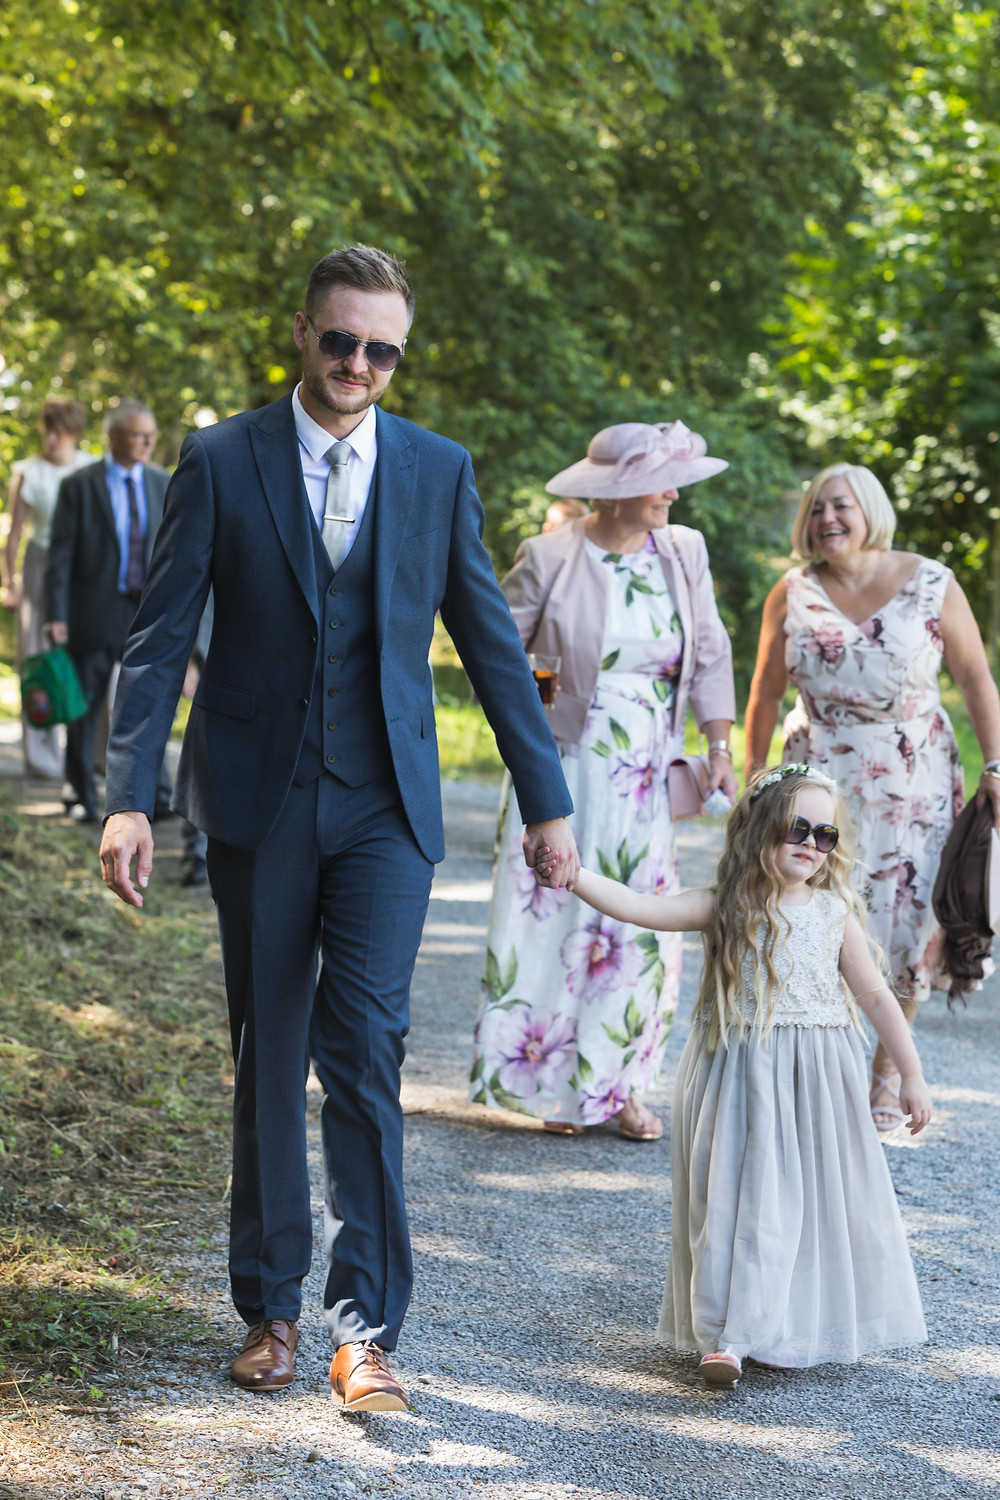 The Groom and the flower girl walking